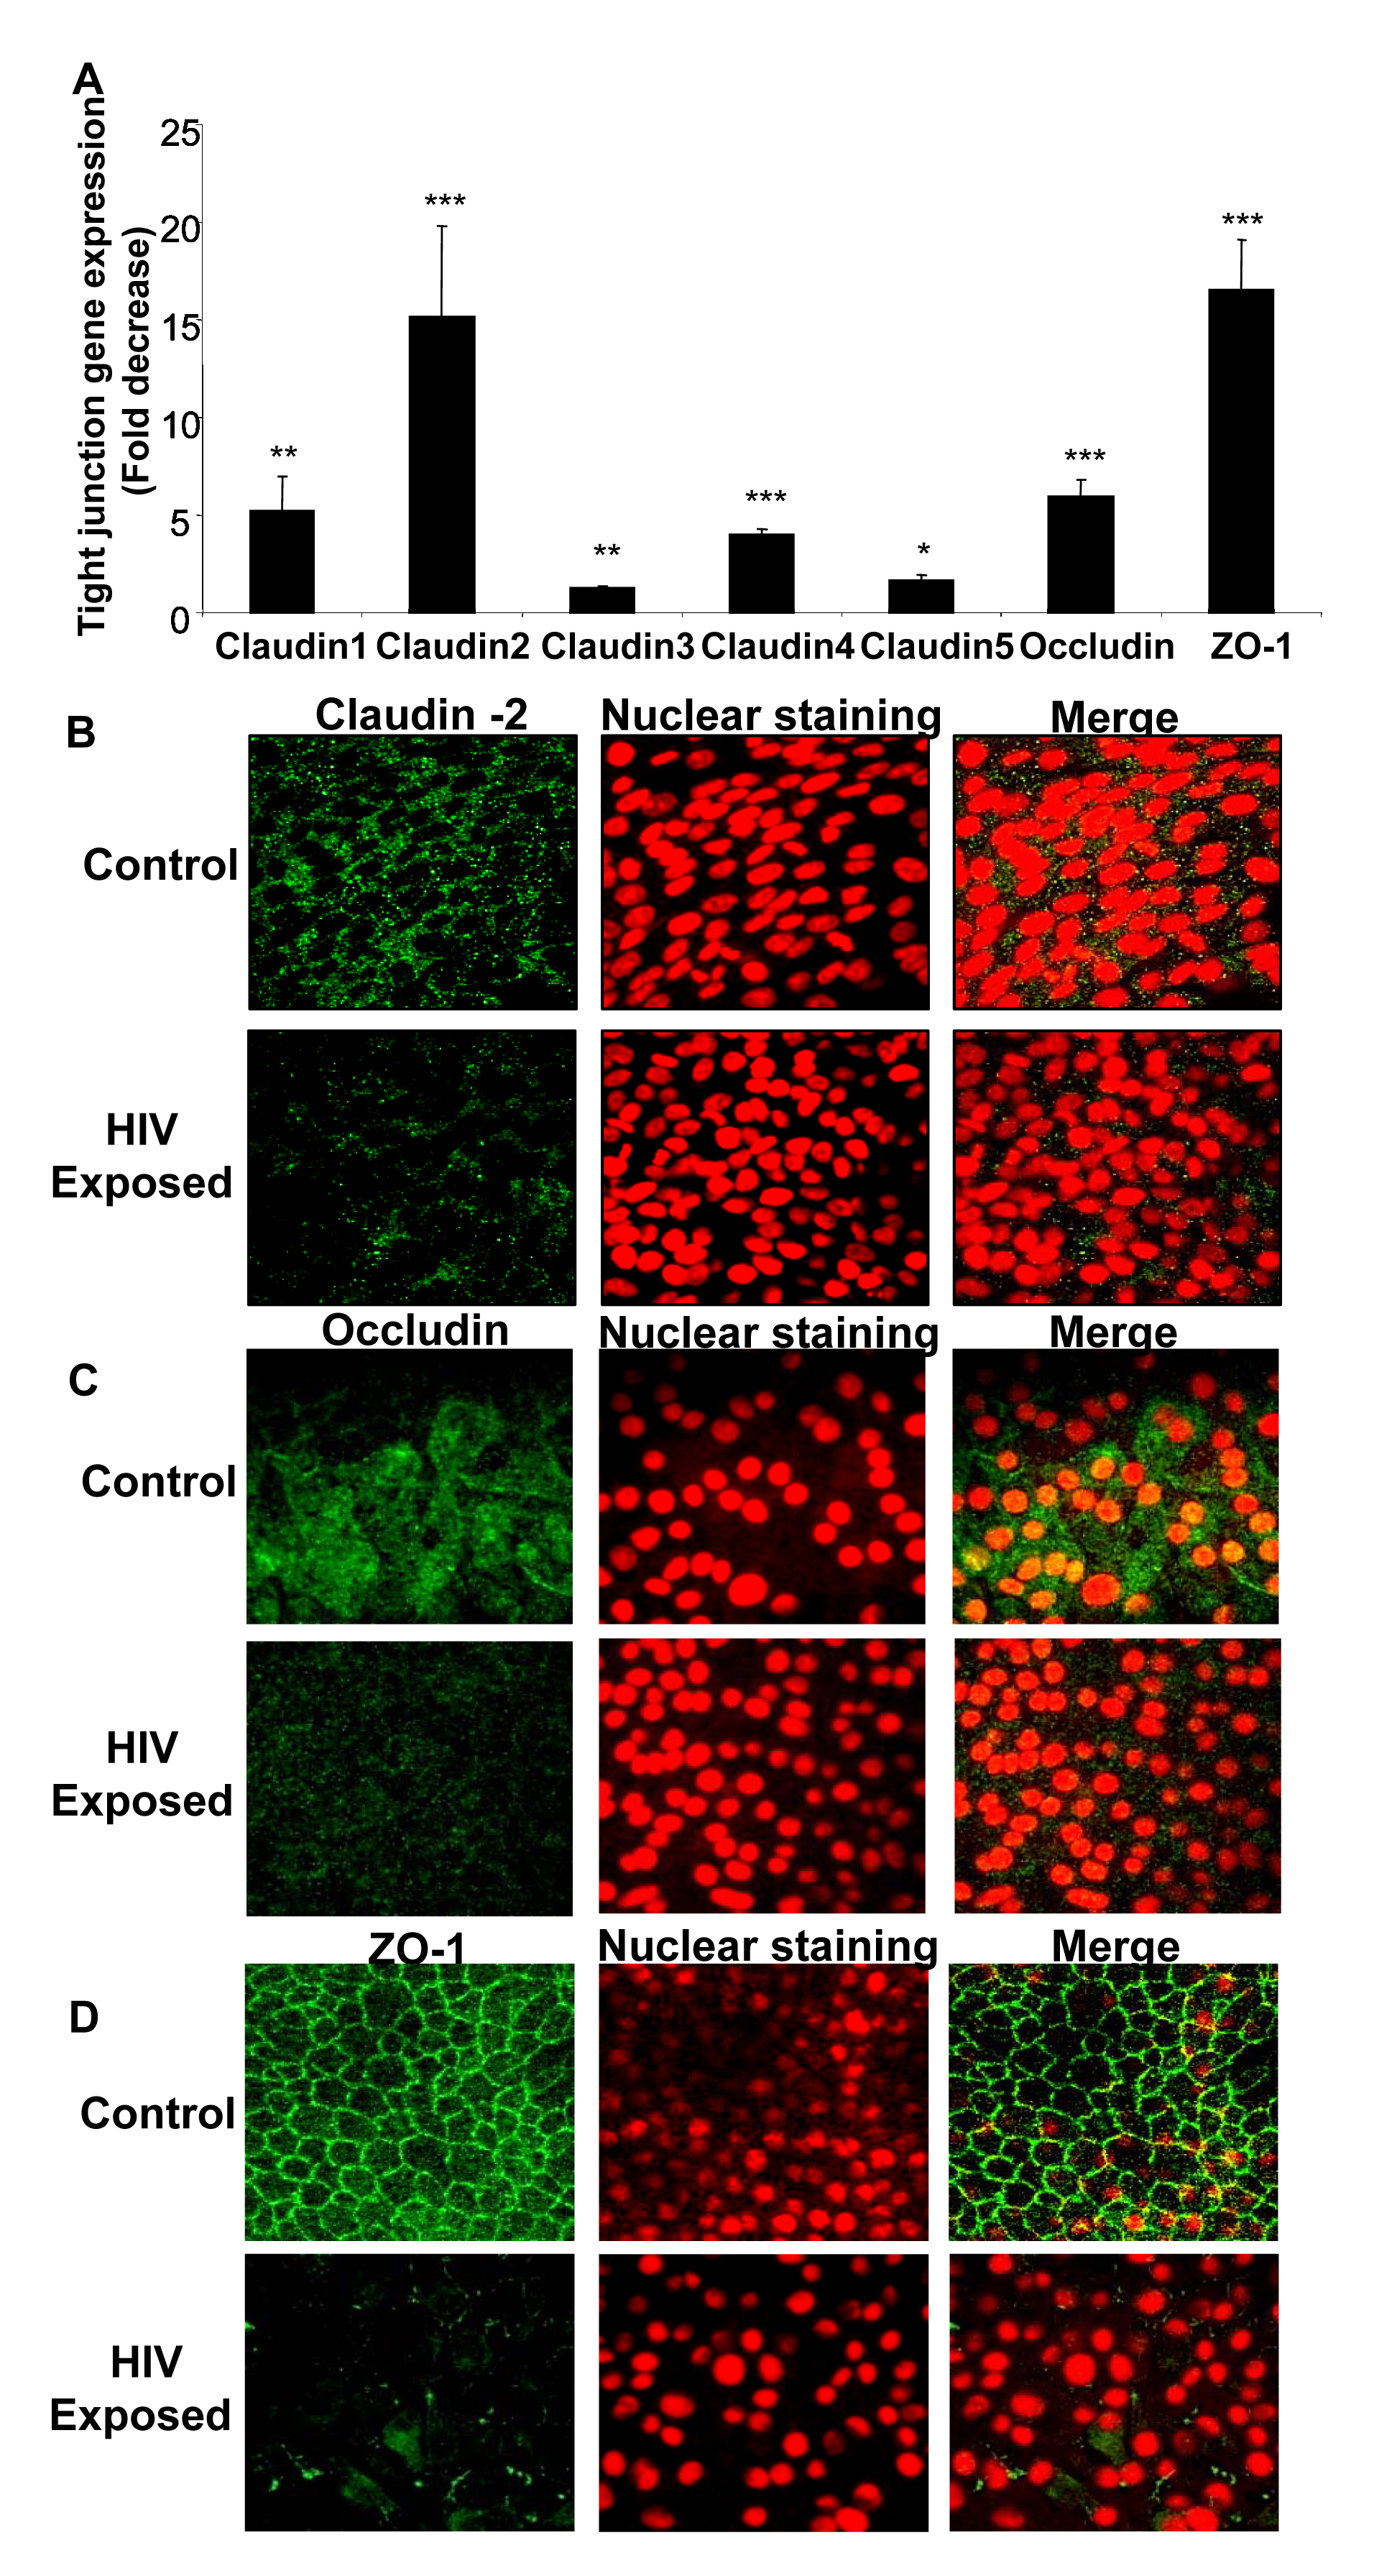 Confluent monolayers grown from primary endometrial epithelial cells were either mock-treated or exposed to HIV-1 (ADA strain, 10<sup>6</sup> infectious viral units/ml, p24 280ng/ml) for 8 hours.